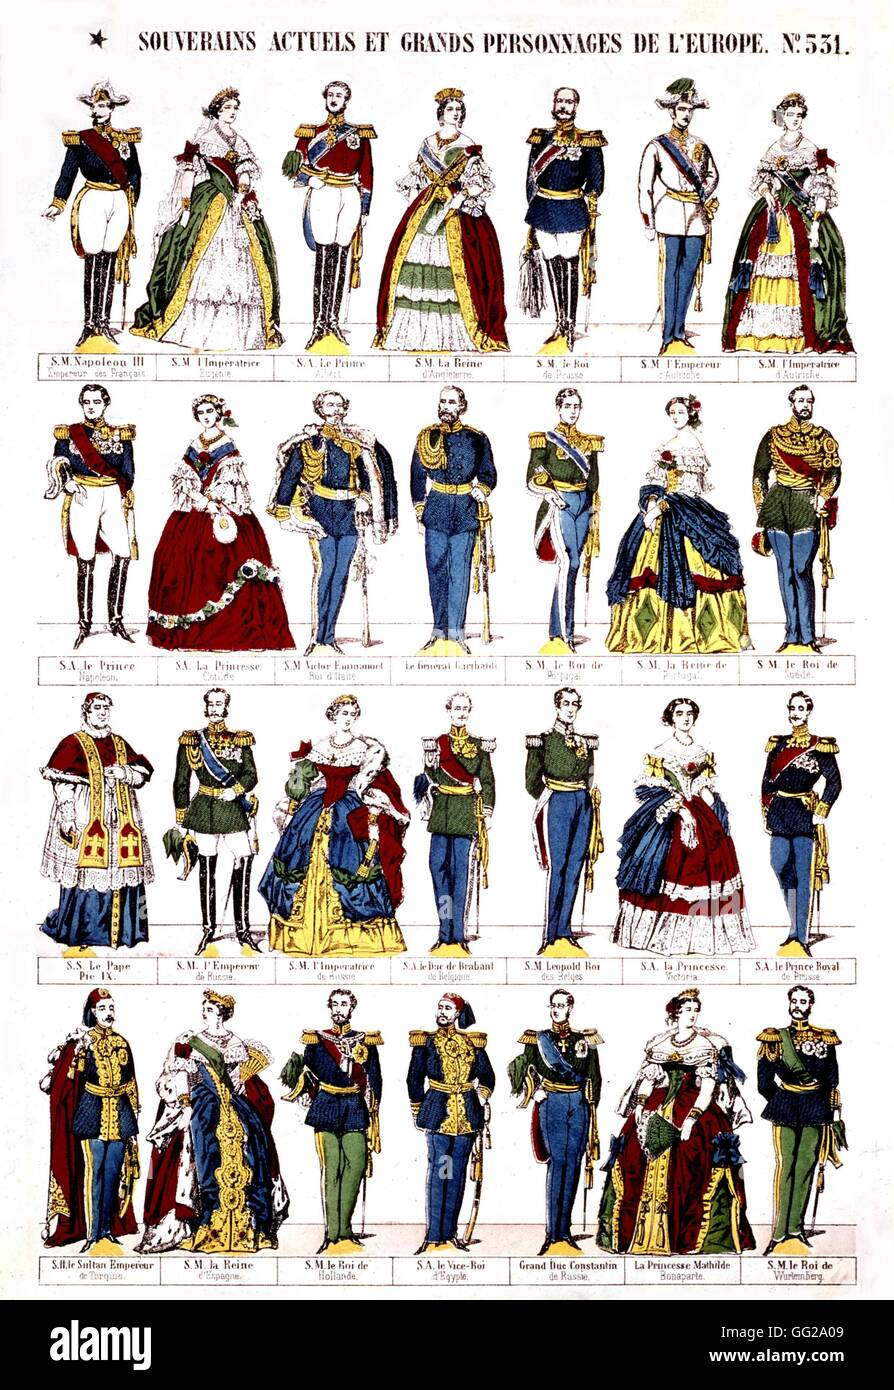 Epinal popular print Monarchs and characters of the Second Empire 19th century France - Stock Image